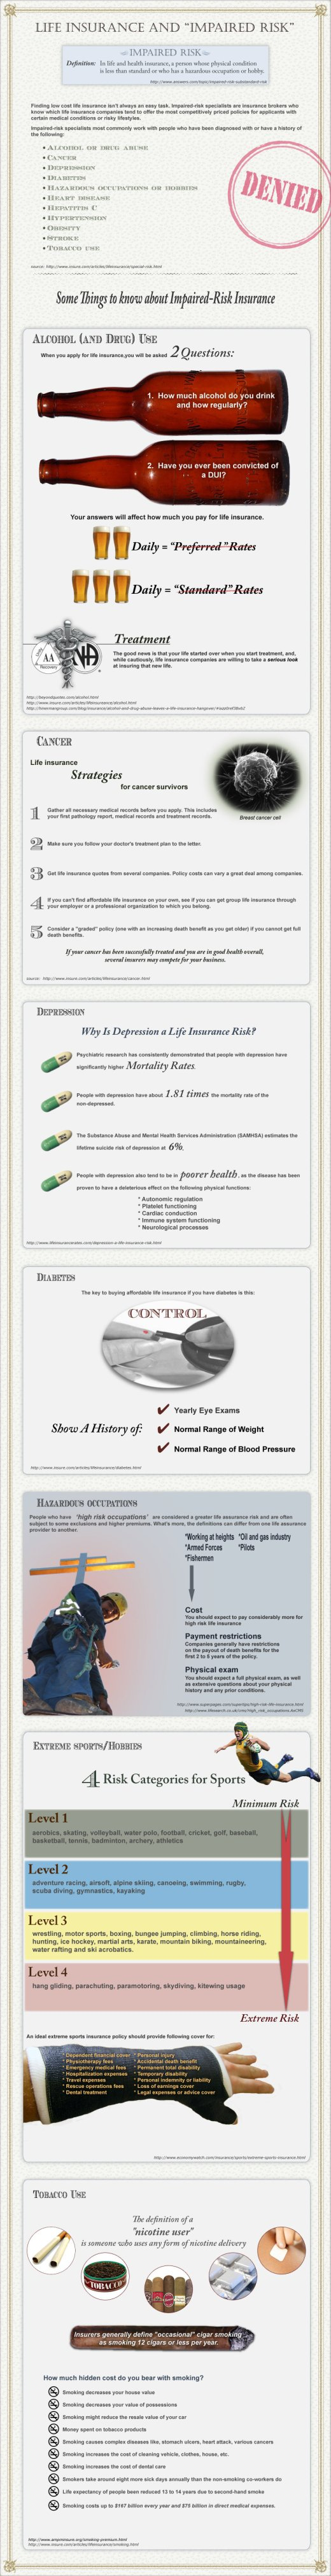 Life Insurance & Impaired Risk Infographic